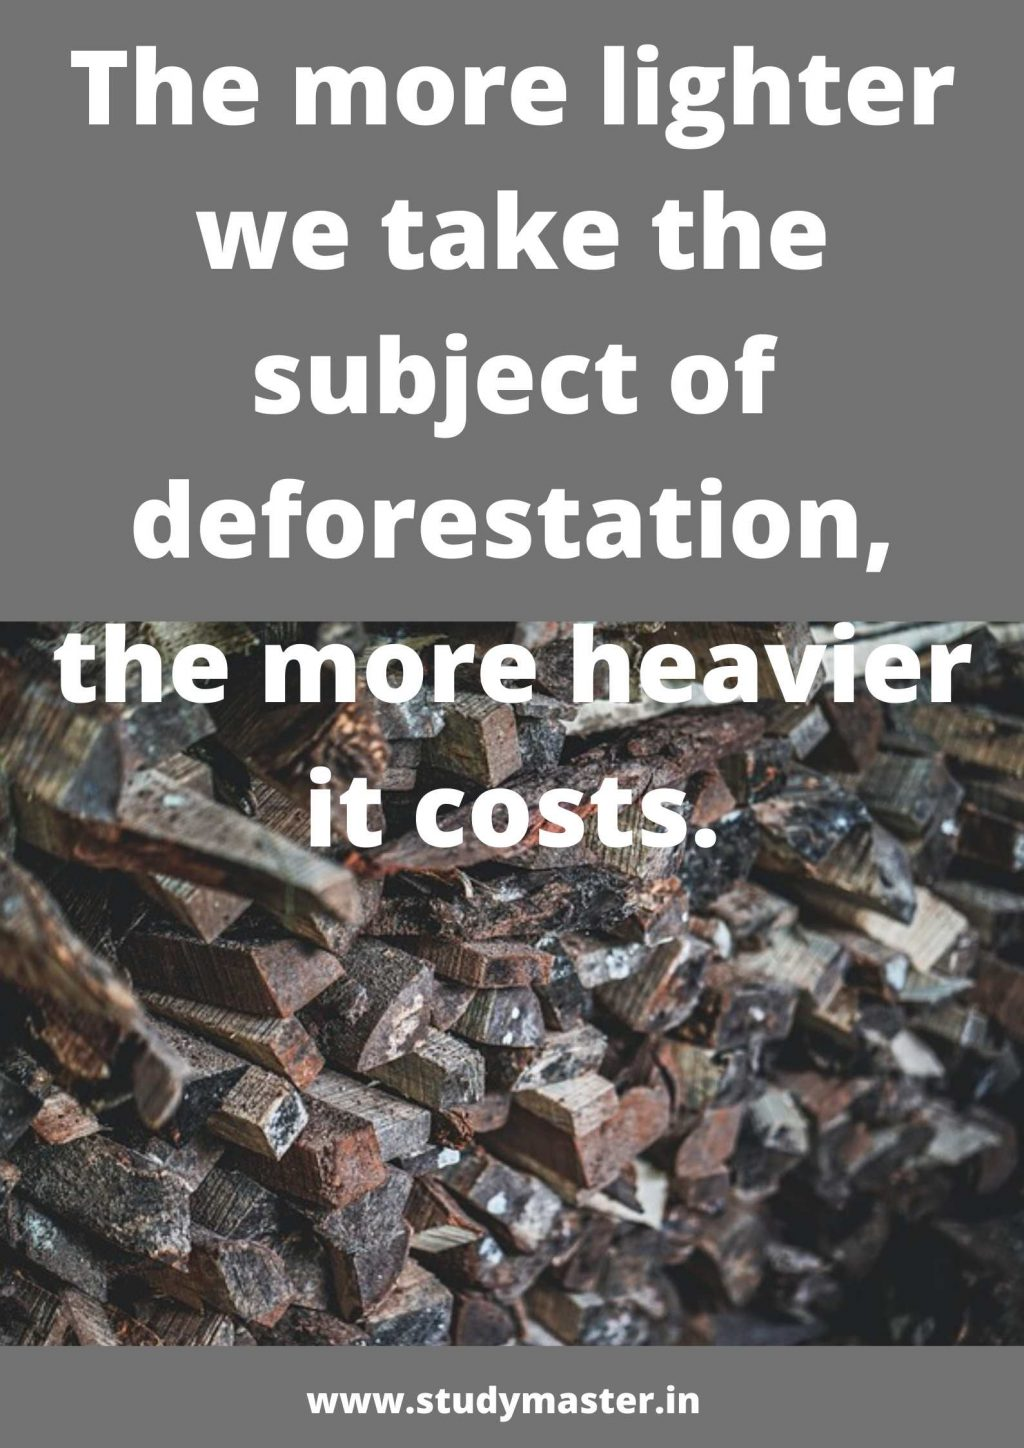 poster on say no to deforestation